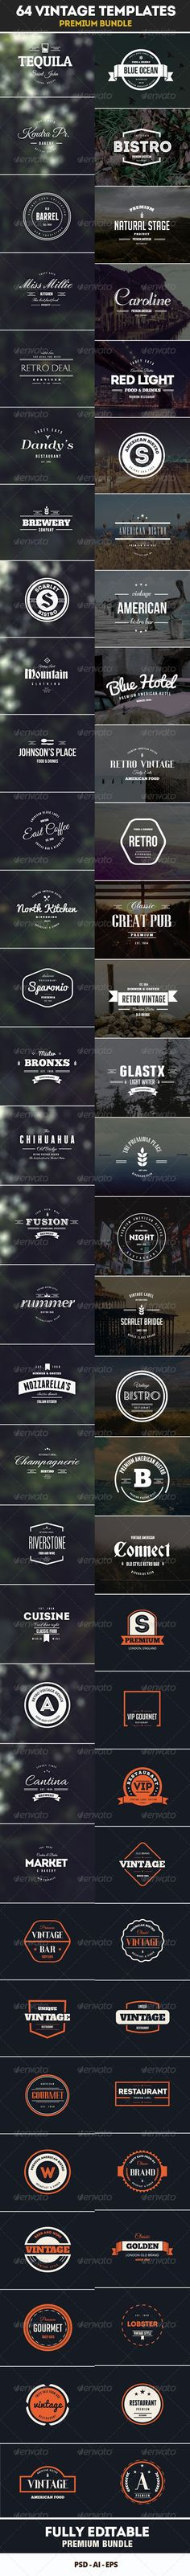 64 Vintage Labels & Badges Logos Bundle Template | Buy and Download: http://graphicriver.net/item/64-vintage-labels-badges-logos-bundle/7993973?WT.ac=category_thumb&WT.z_author=designdistrictmx&ref=ksioks: